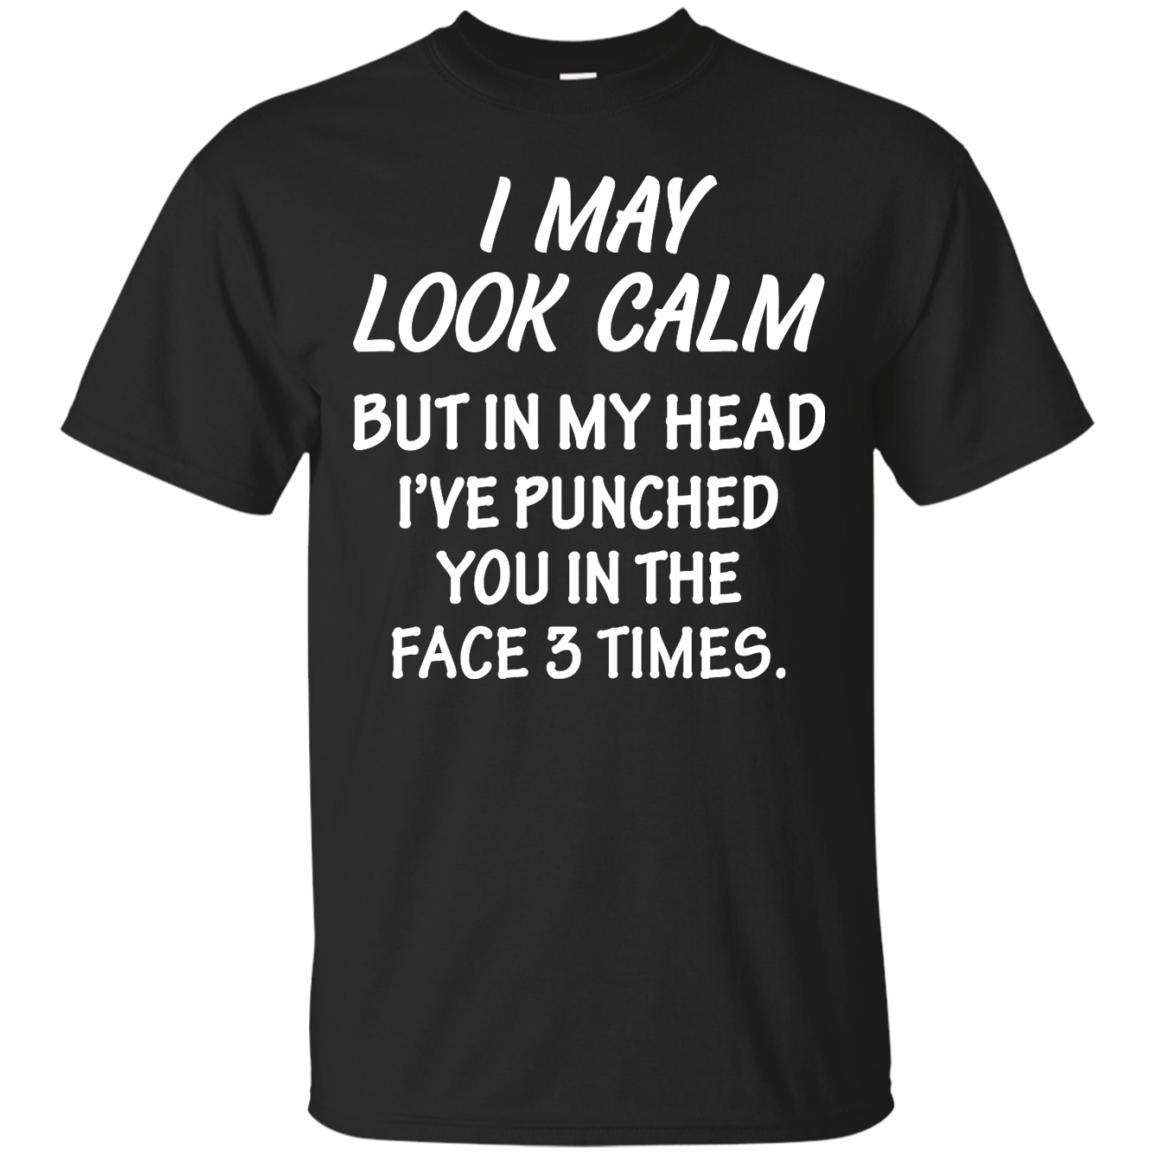 Awesome Tees: Funny - I may look calm but in my head i've punched you in the face 3 times  T-shirt,Tank top & Hoodies